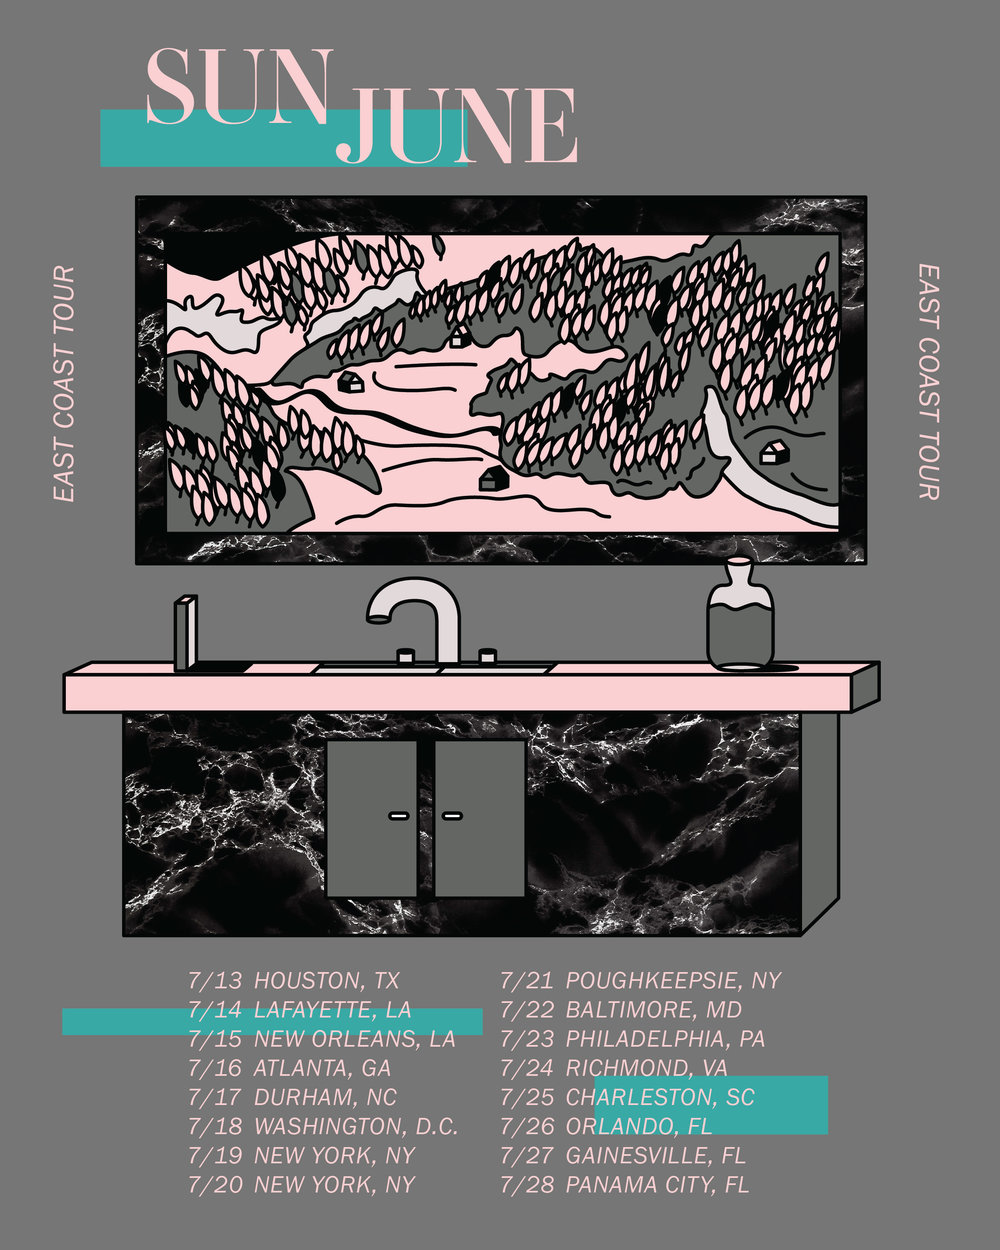 Sun June Tour Poster_REV_5.22_OUTLINES-02.jpg